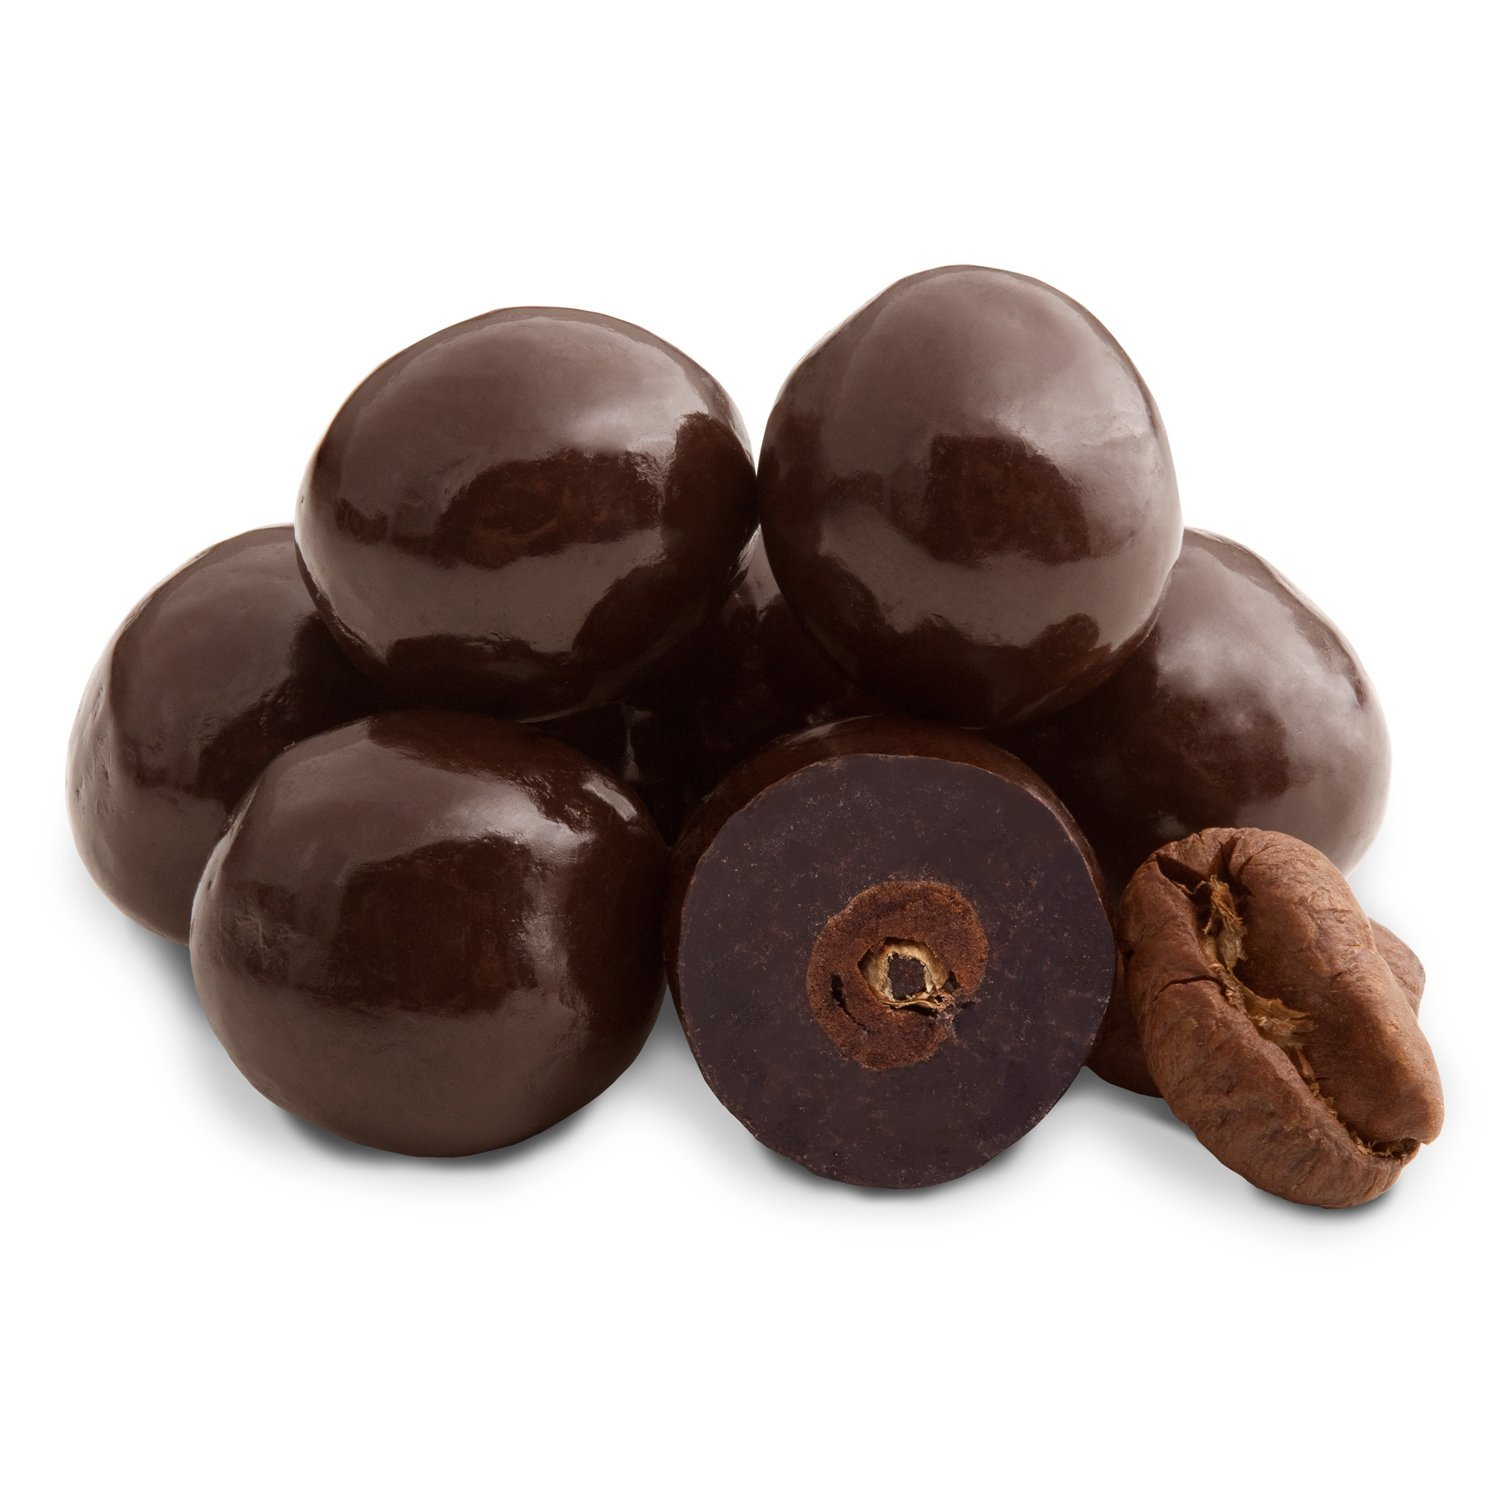 Dark Chocolate Espresso Beans- Pack of 6 Gift Bags by Sunflower Food Company